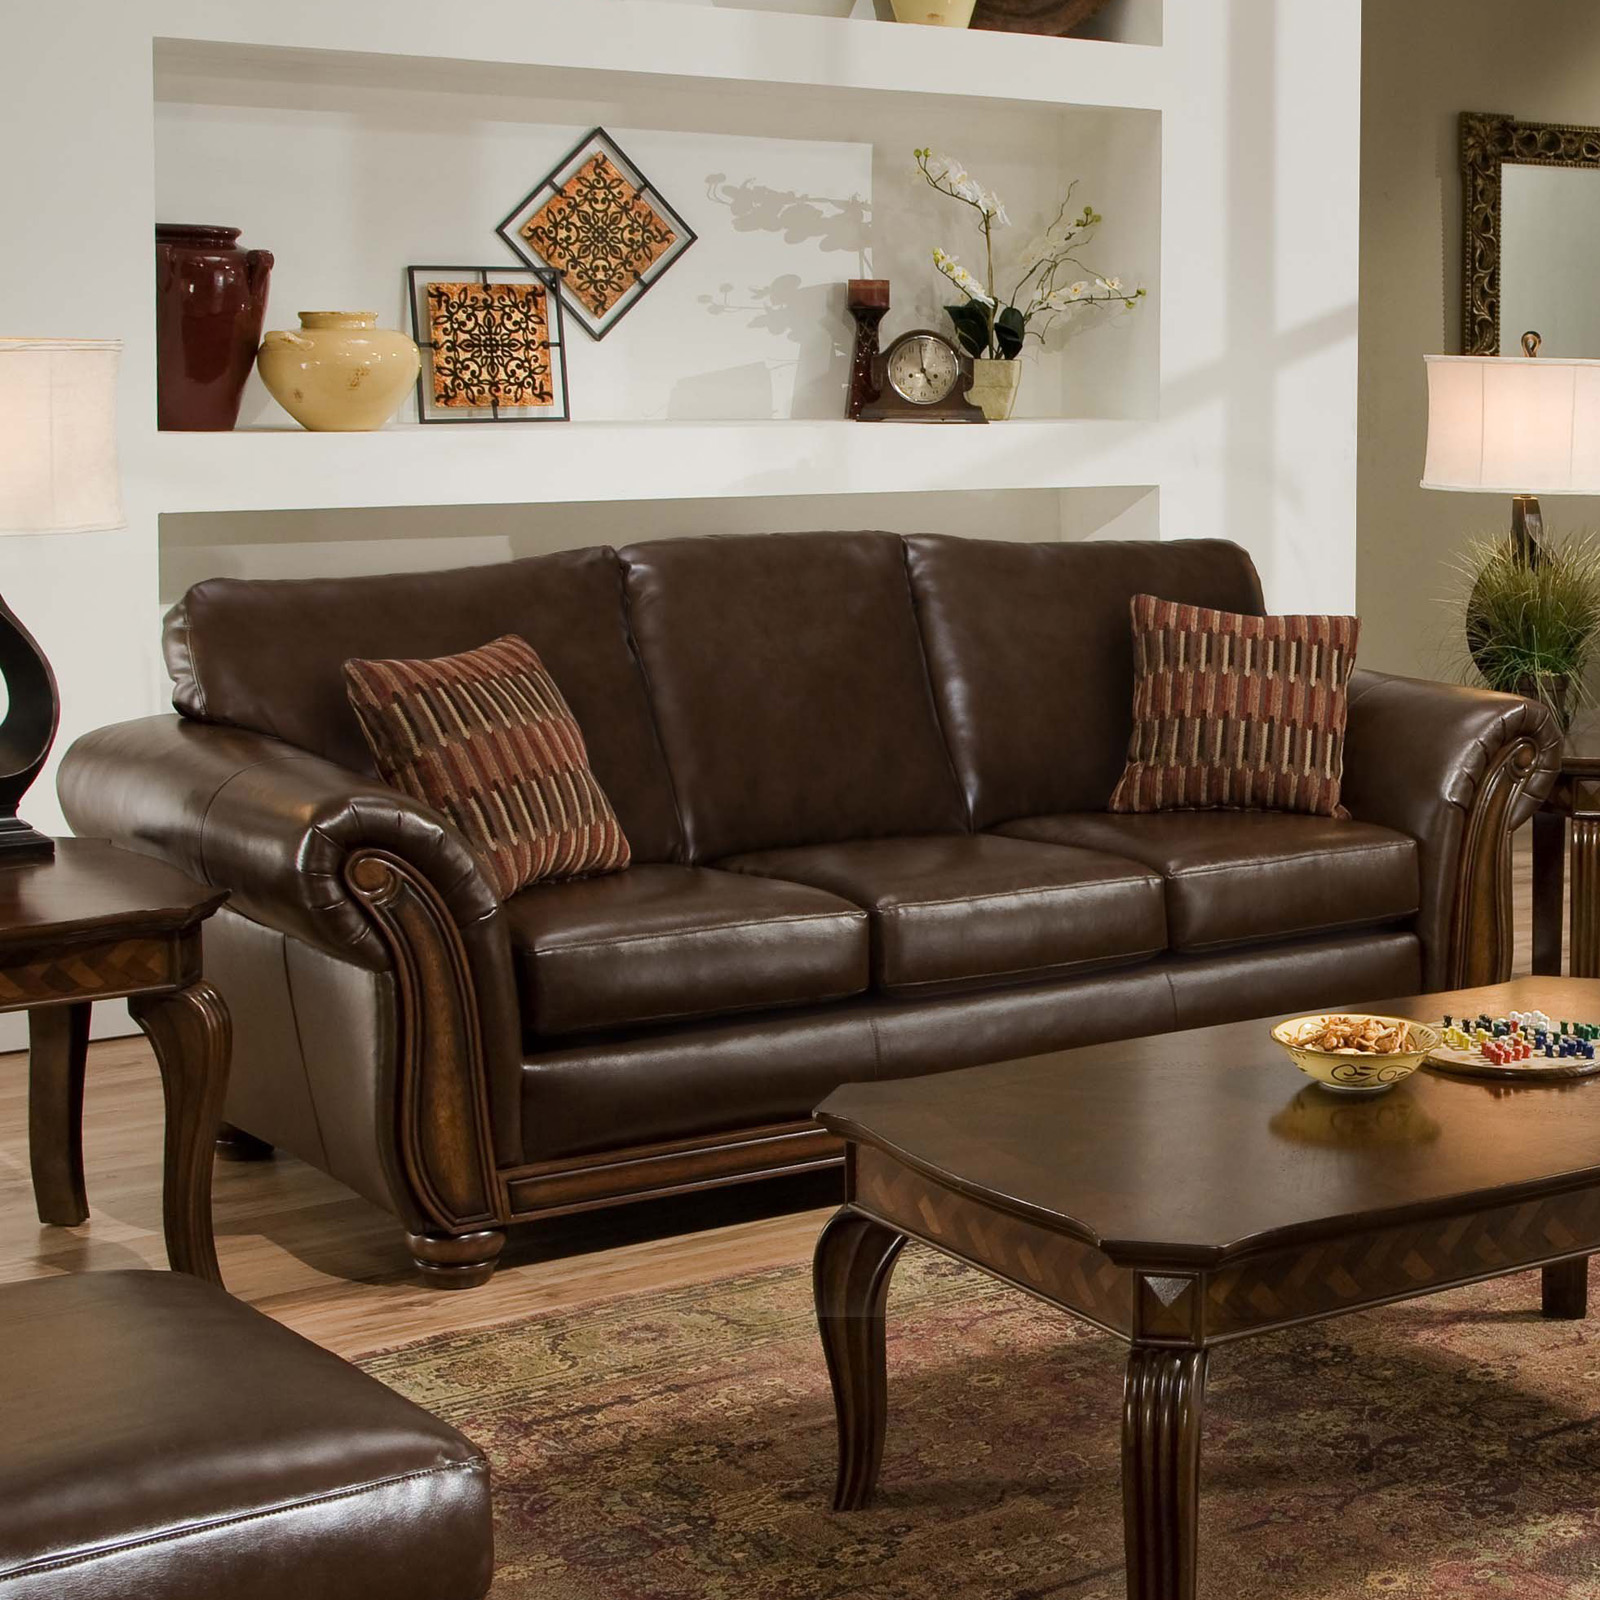 Leather Sofa For Accent Pillows: Simmons Santa Monica Vintage Leather Sofa With Accent